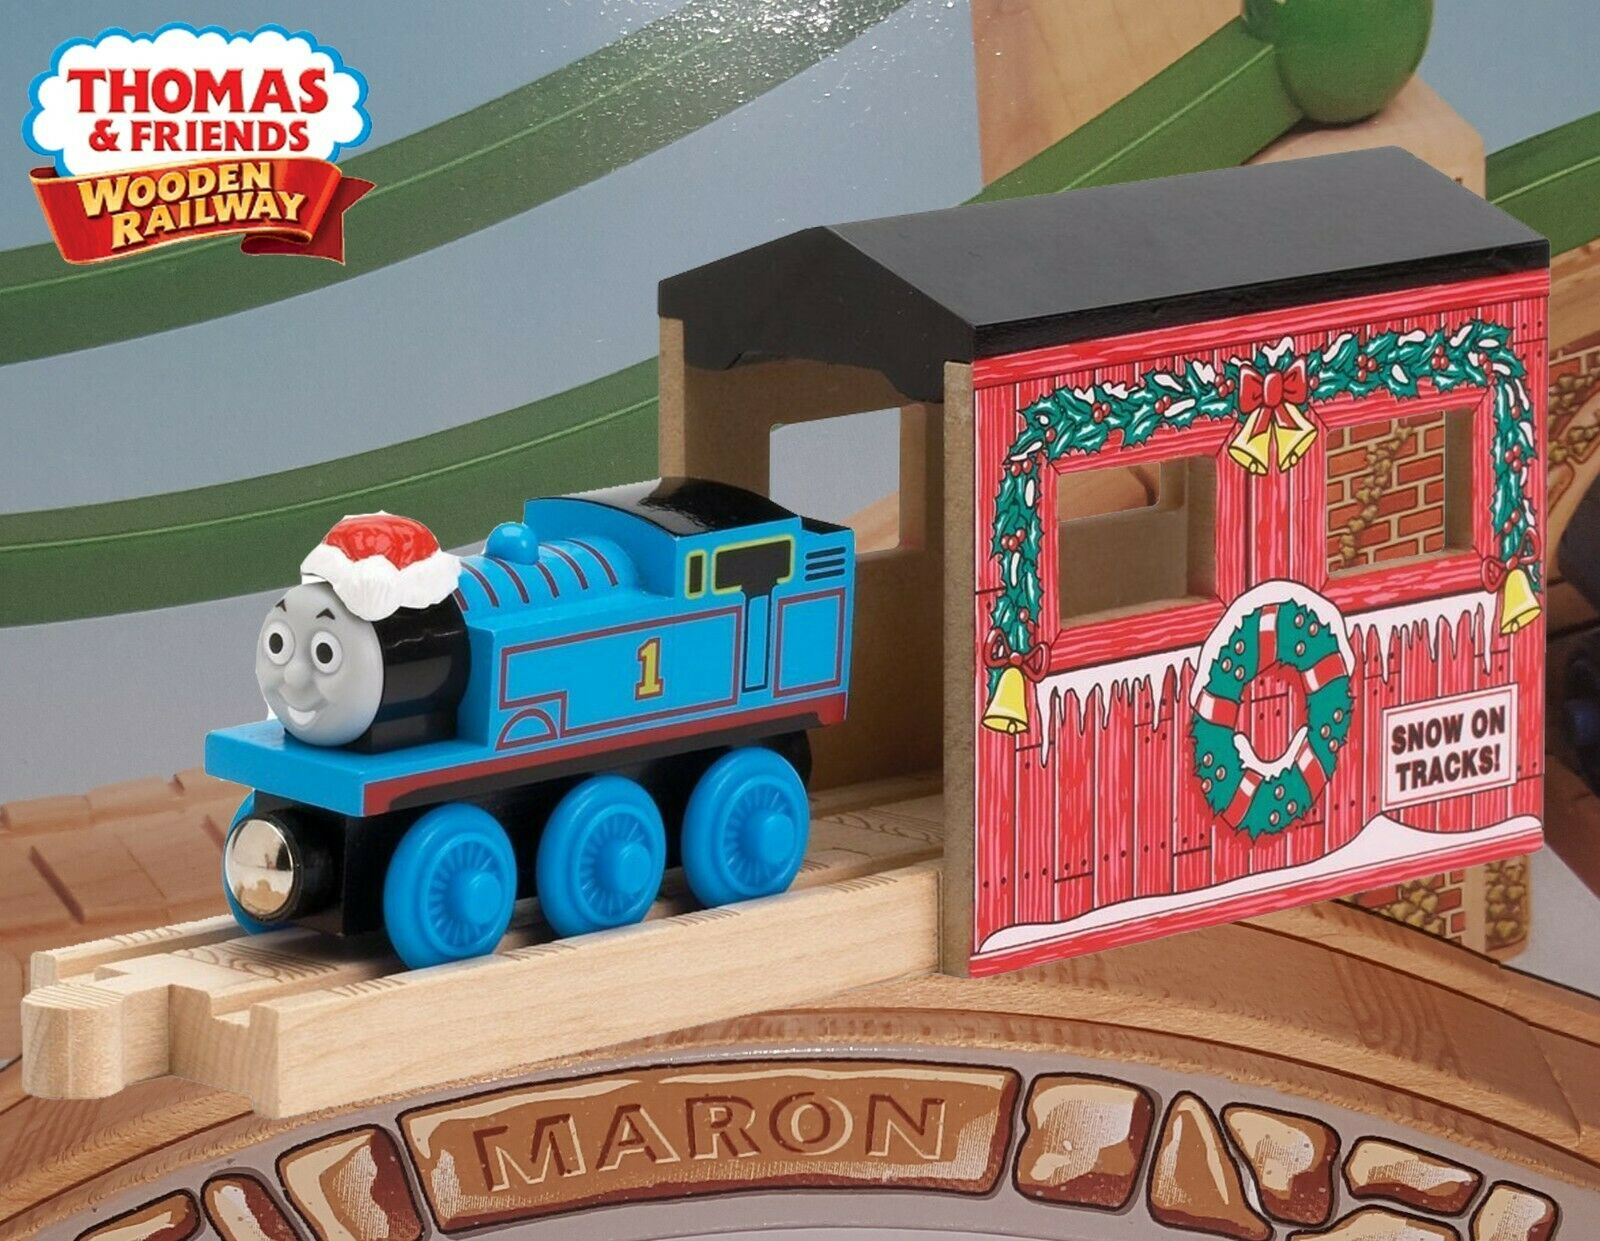 THOMAS AND FRIENDS WOODEN RAILWAY  HOLIDAY TUNNEL  LC99385  CHRISTMAS THOMAS